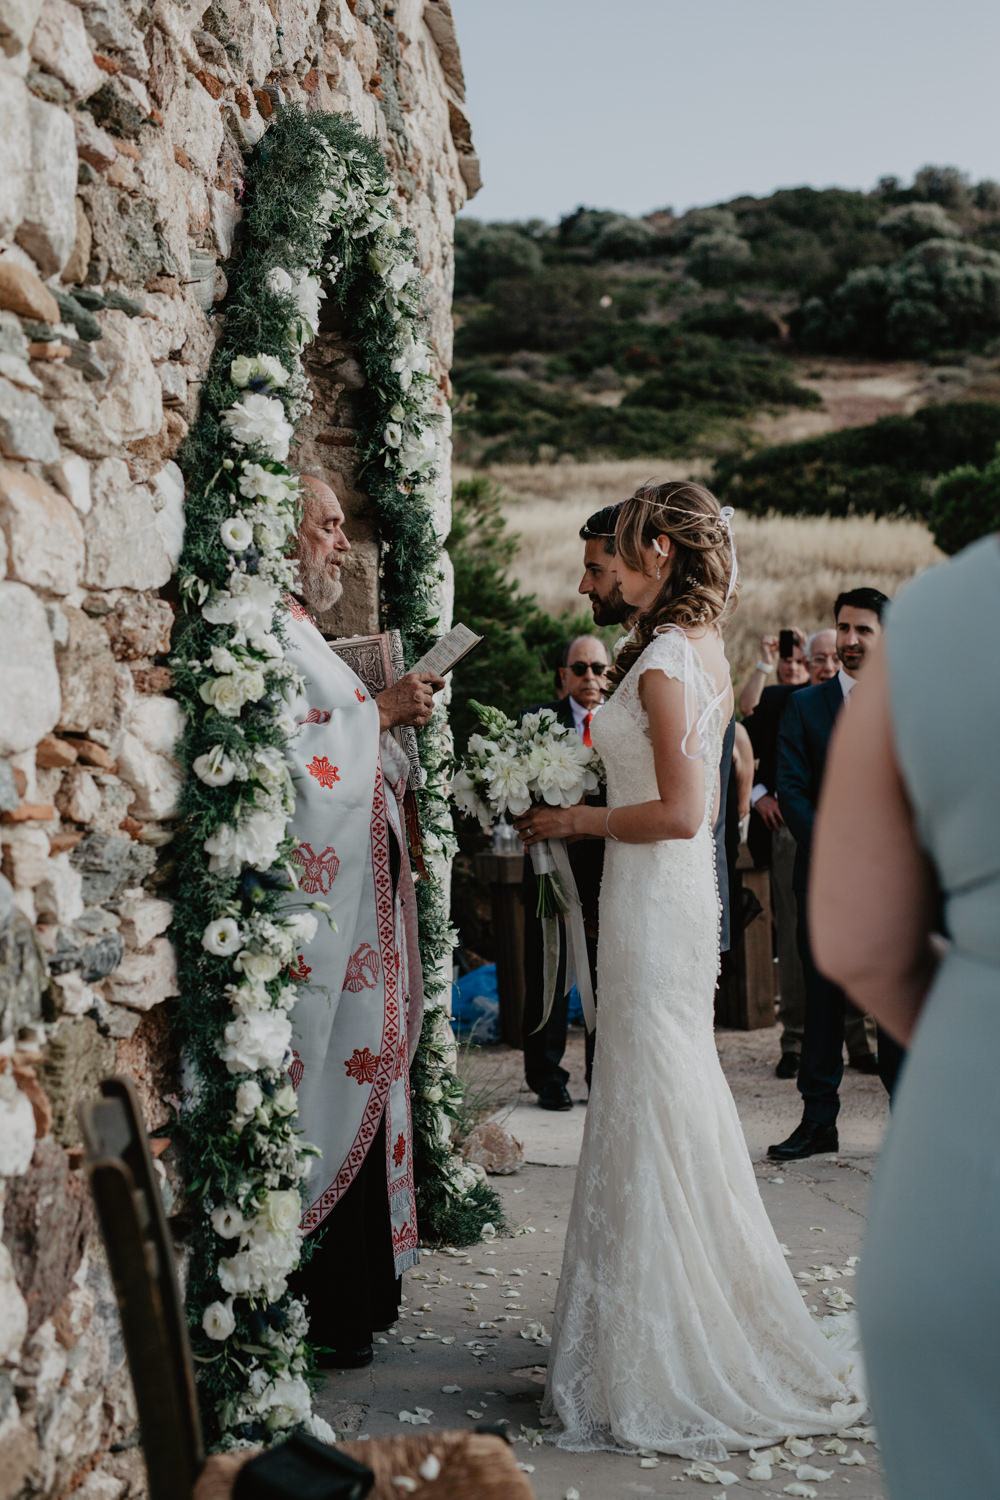 Church Floral Greenery Arch Bride Bridal Fishtail Lace Cap Sleeve Sweetheart Dress Gown Greece Destination Wedding Elena Popa Photography